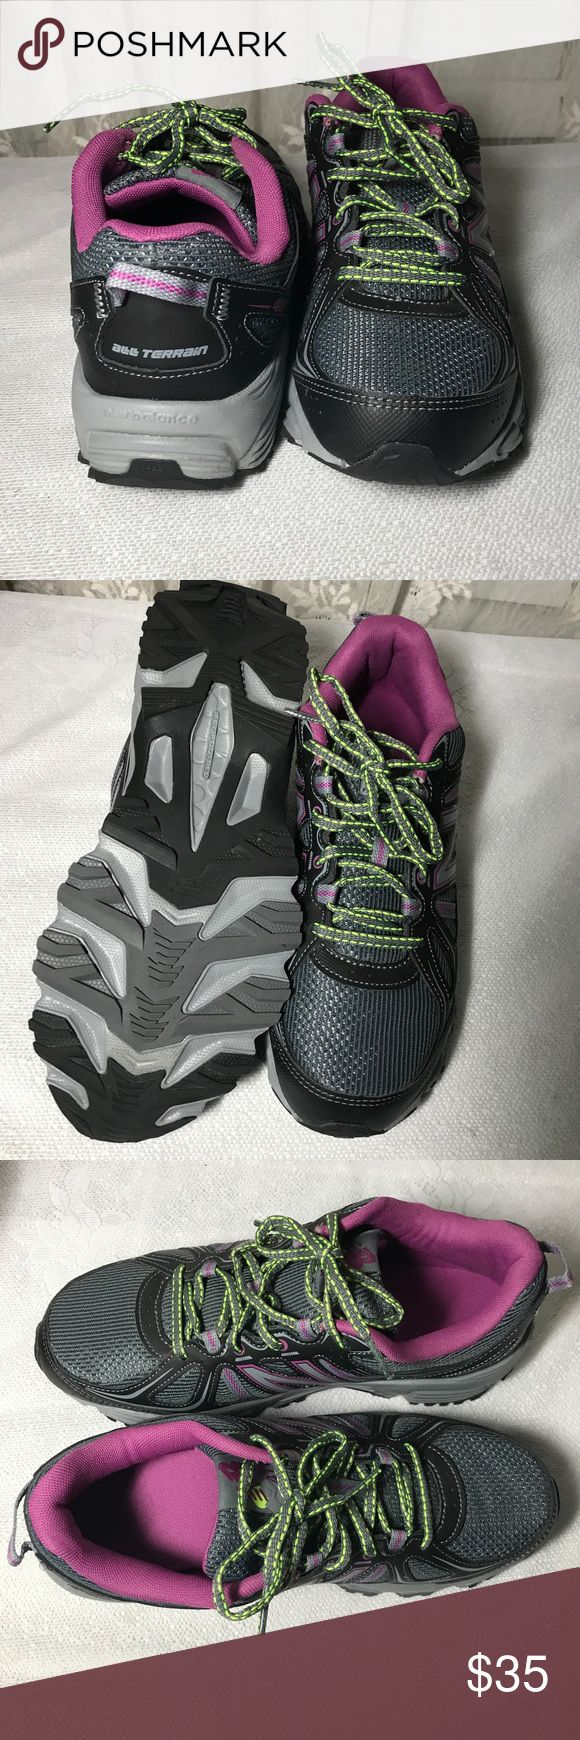 New Balance All Terrain Trainers Running Shoes New gray & purple with neon laces. New Balance All Terrain trainers. Size 10 New Balance Shoes Sneakers